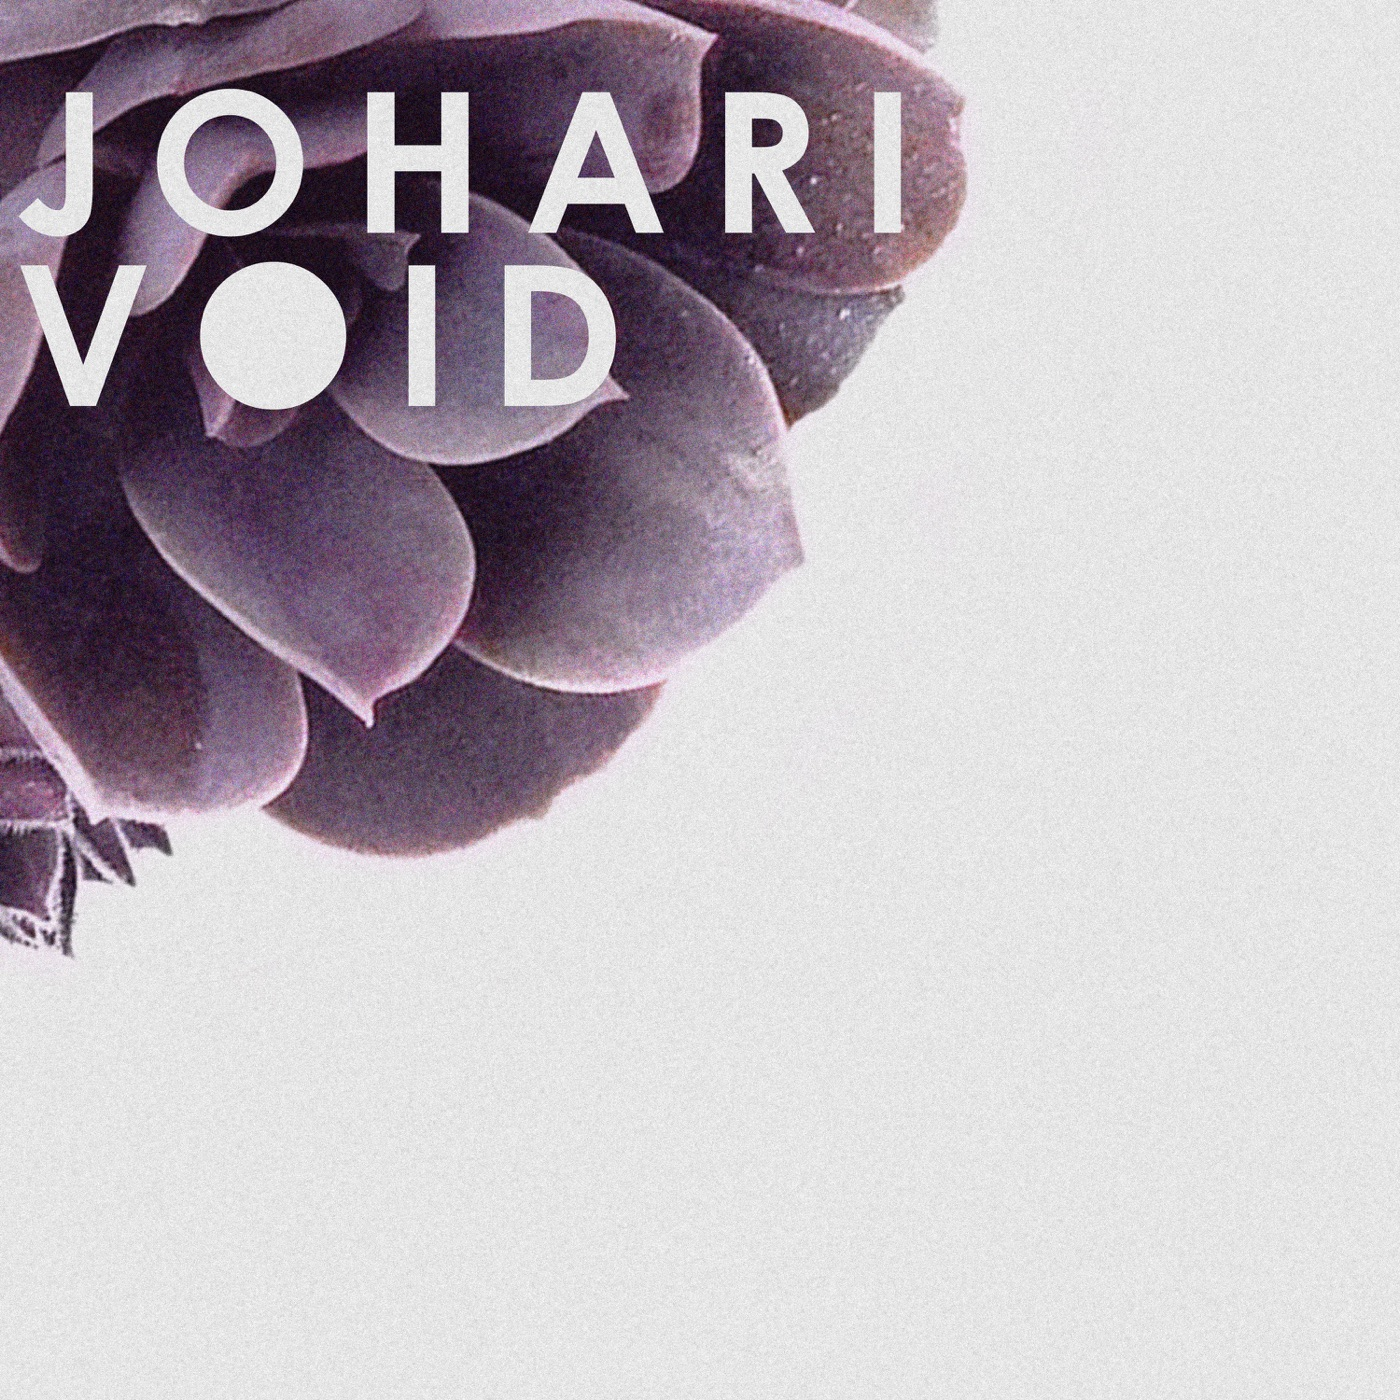 Johari - Void [single] (2017)